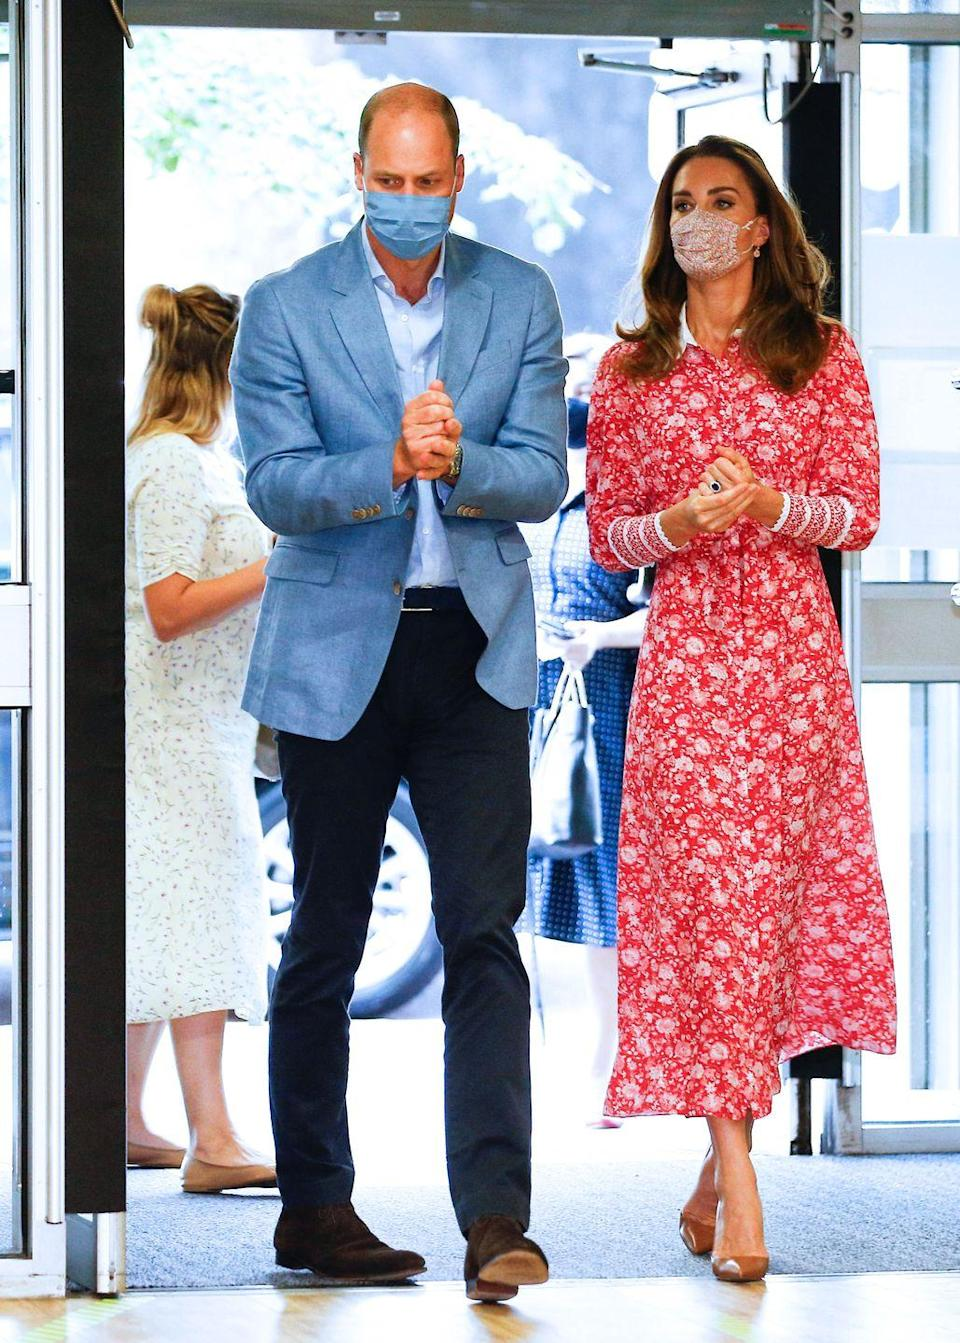 """<p>The Duke and Duchess of Cambridge <a href=""""https://www.townandcountrymag.com/society/tradition/a34026114/prince-william-kate-middleton-london-back-to-work-photos/"""" rel=""""nofollow noopener"""" target=""""_blank"""" data-ylk=""""slk:spent the day in London"""" class=""""link rapid-noclick-resp"""">spent the day in London</a>, visiting communities hit hard by the coronavirus pandemic. Kate ushered in fall with a red floral shirtdress, brown pumps, and her frequently-worn Liberty-print face mask from the boutique, <a href=""""https://www.amaiakids.co.uk/collections/adult-masks"""" rel=""""nofollow noopener"""" target=""""_blank"""" data-ylk=""""slk:Amaia"""" class=""""link rapid-noclick-resp"""">Amaia</a>. </p>"""